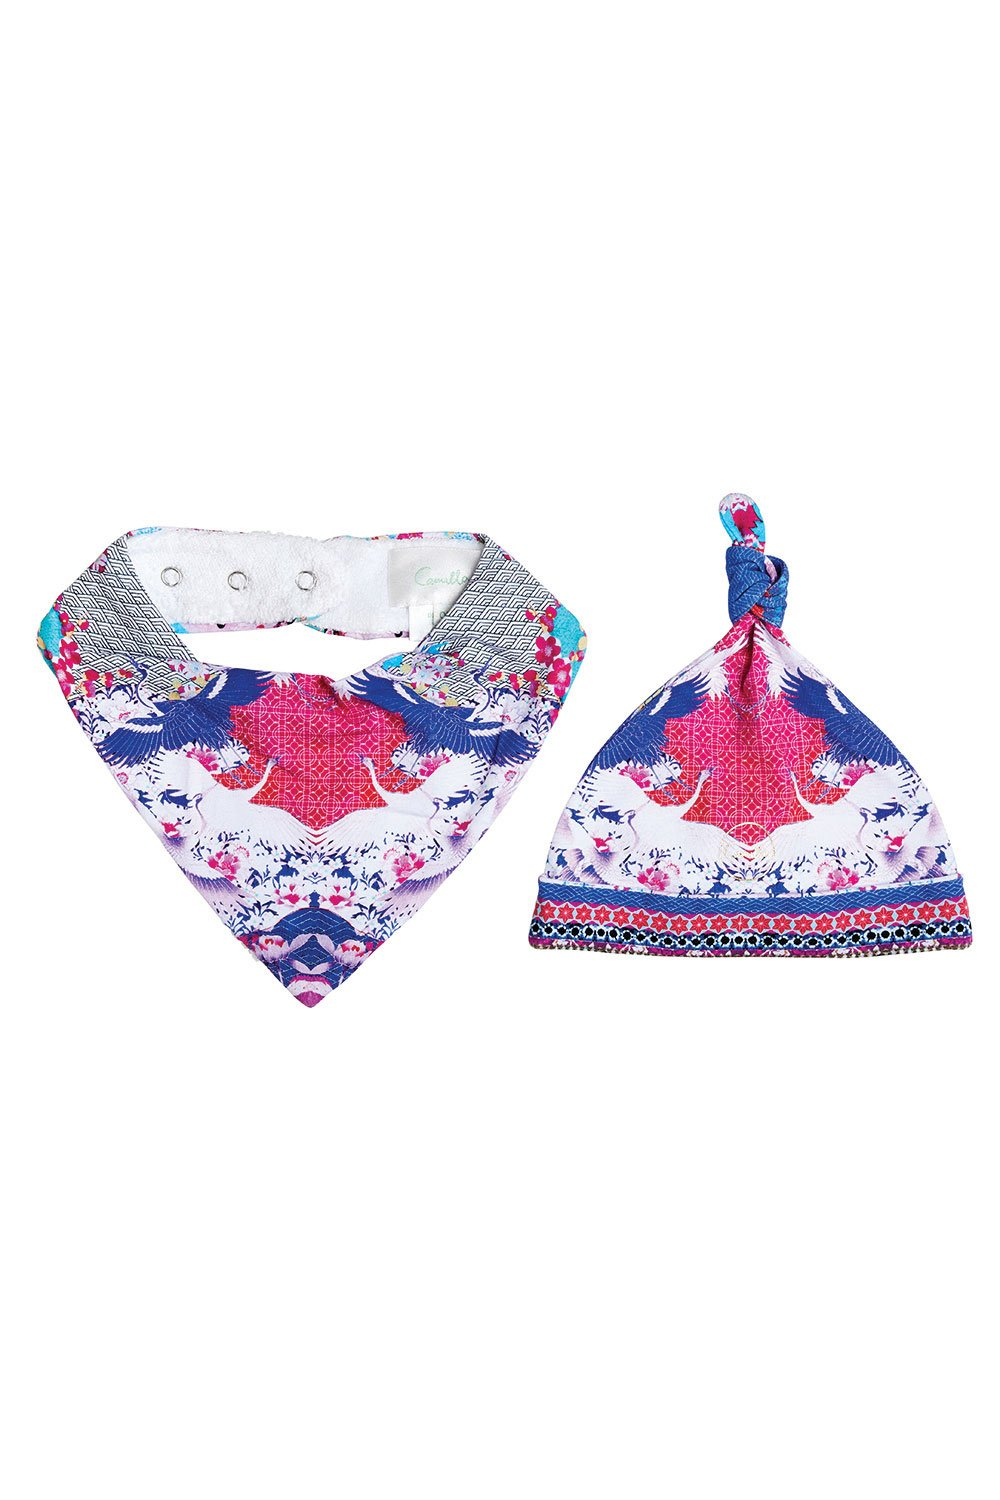 MILLA SKY OF VENUS BABIES BIB AND BEANIE SET